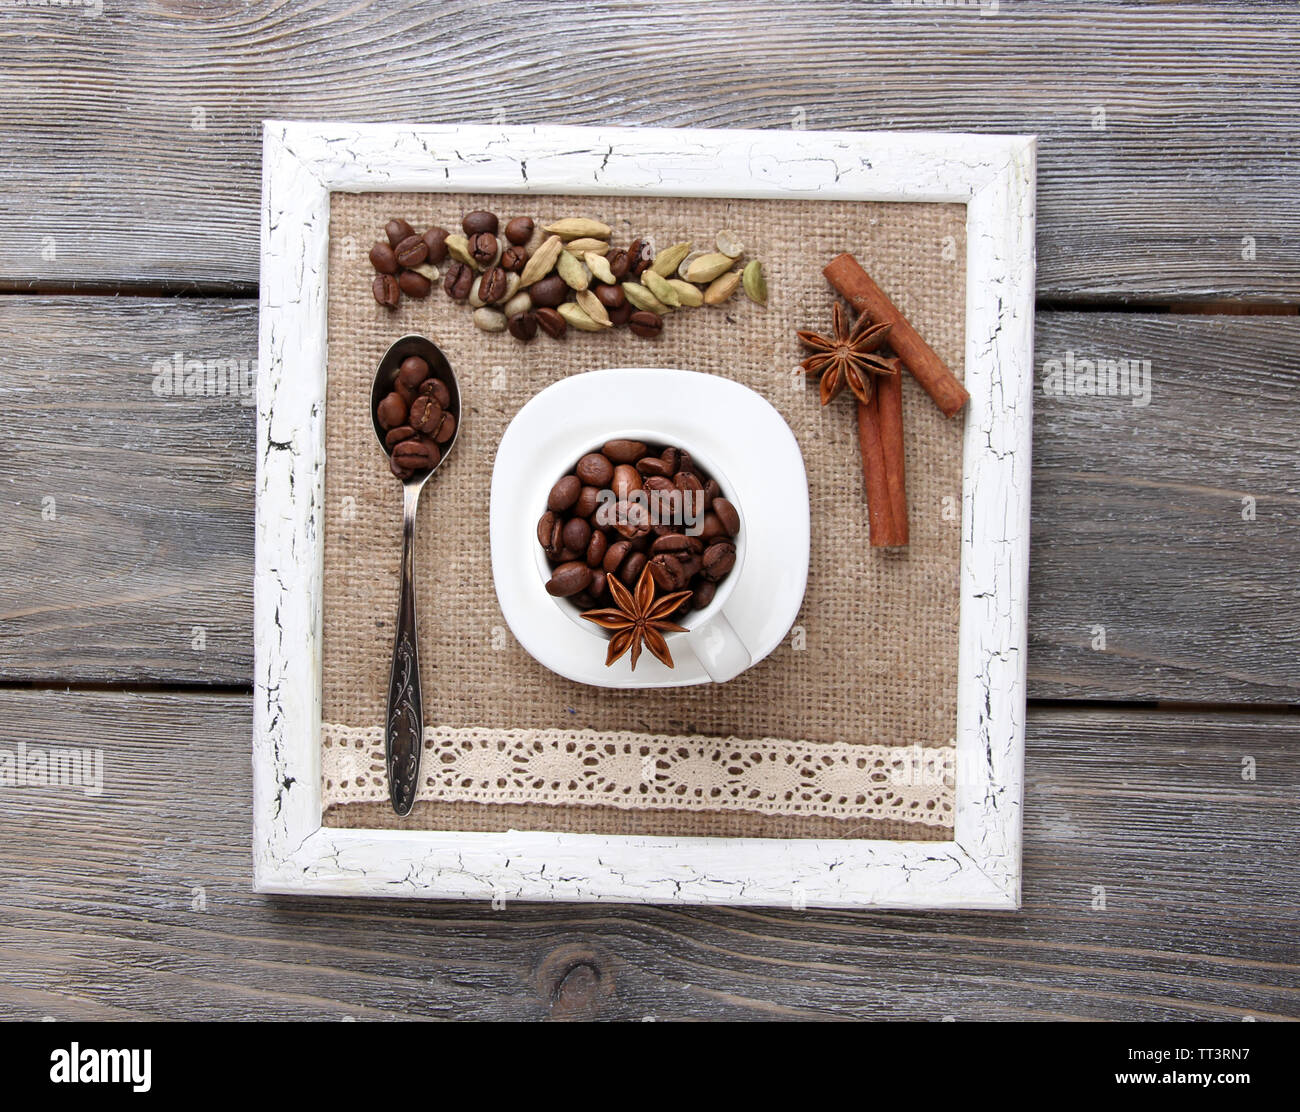 Wooden frame with white mug, coffee grains and spices on wooden background Stock Photo